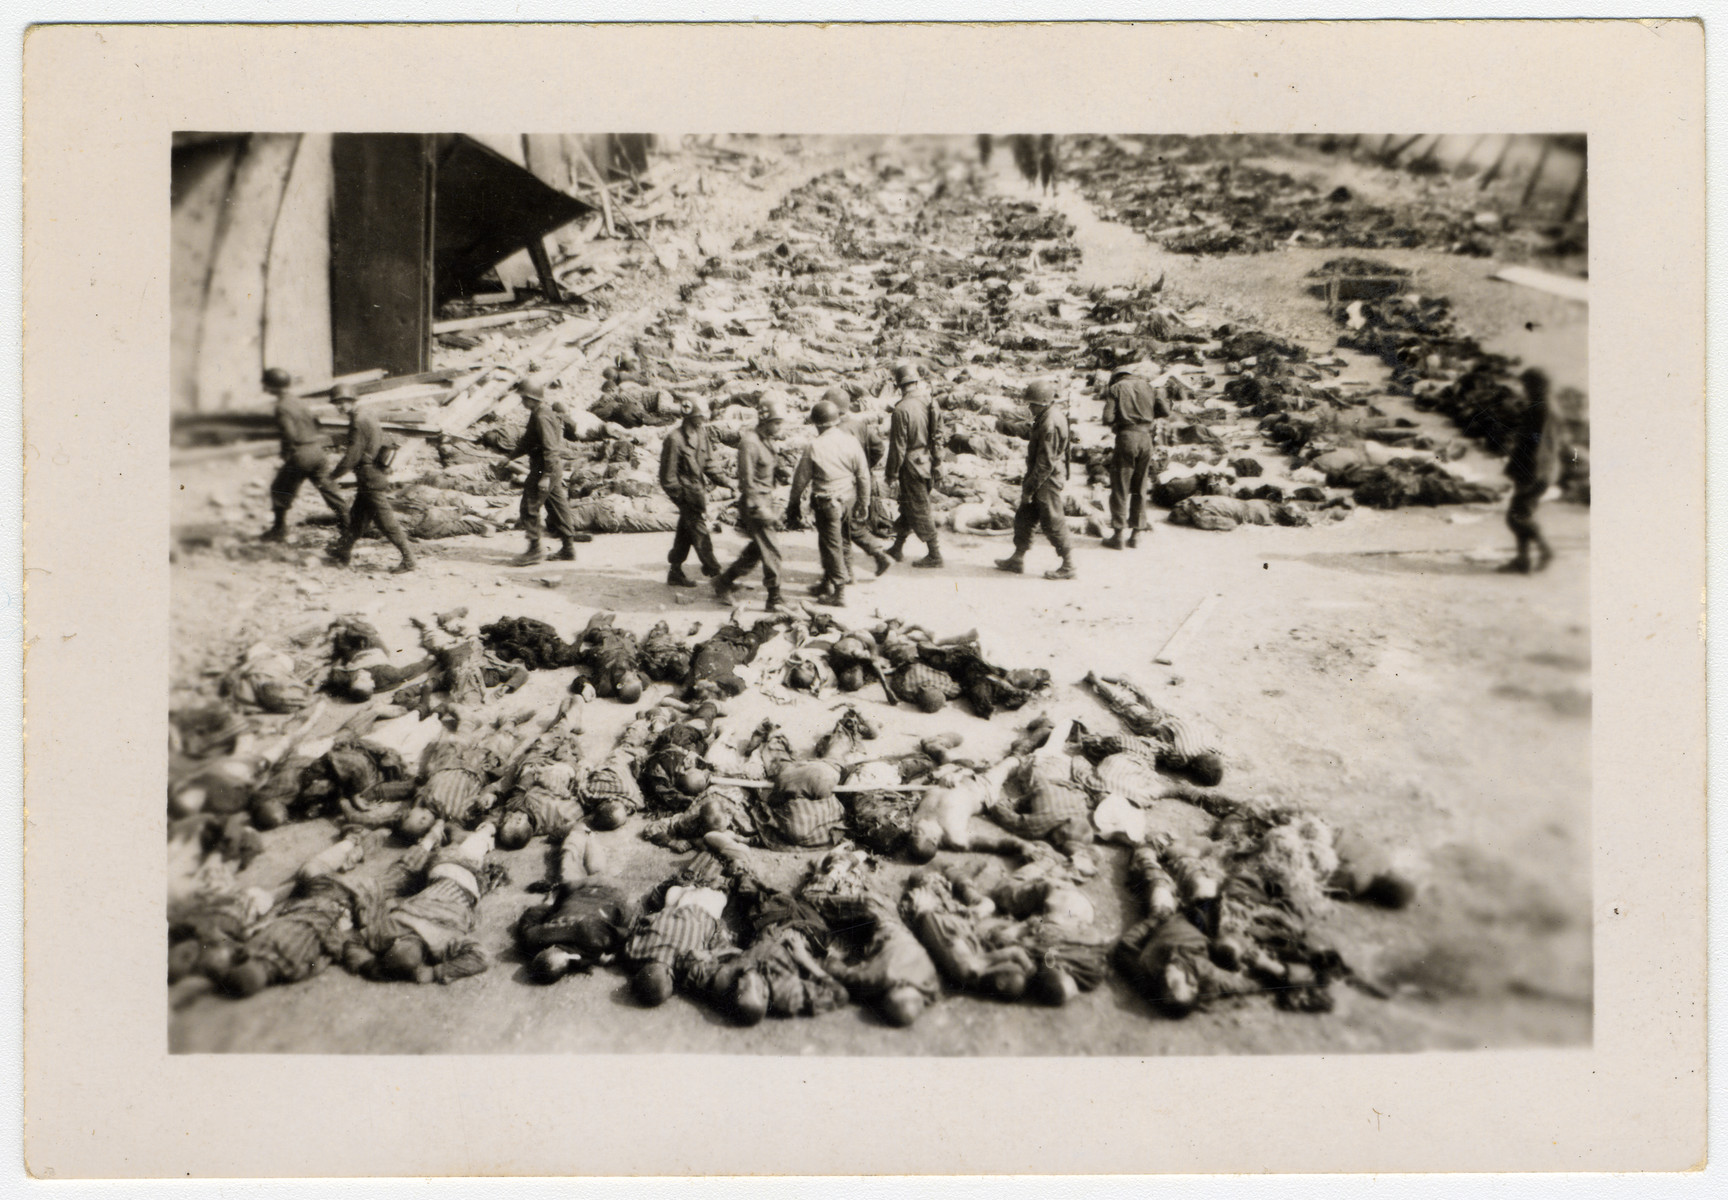 American soldiers walk among corpses that are laid out in rows in the Nordhausen concentration camp.